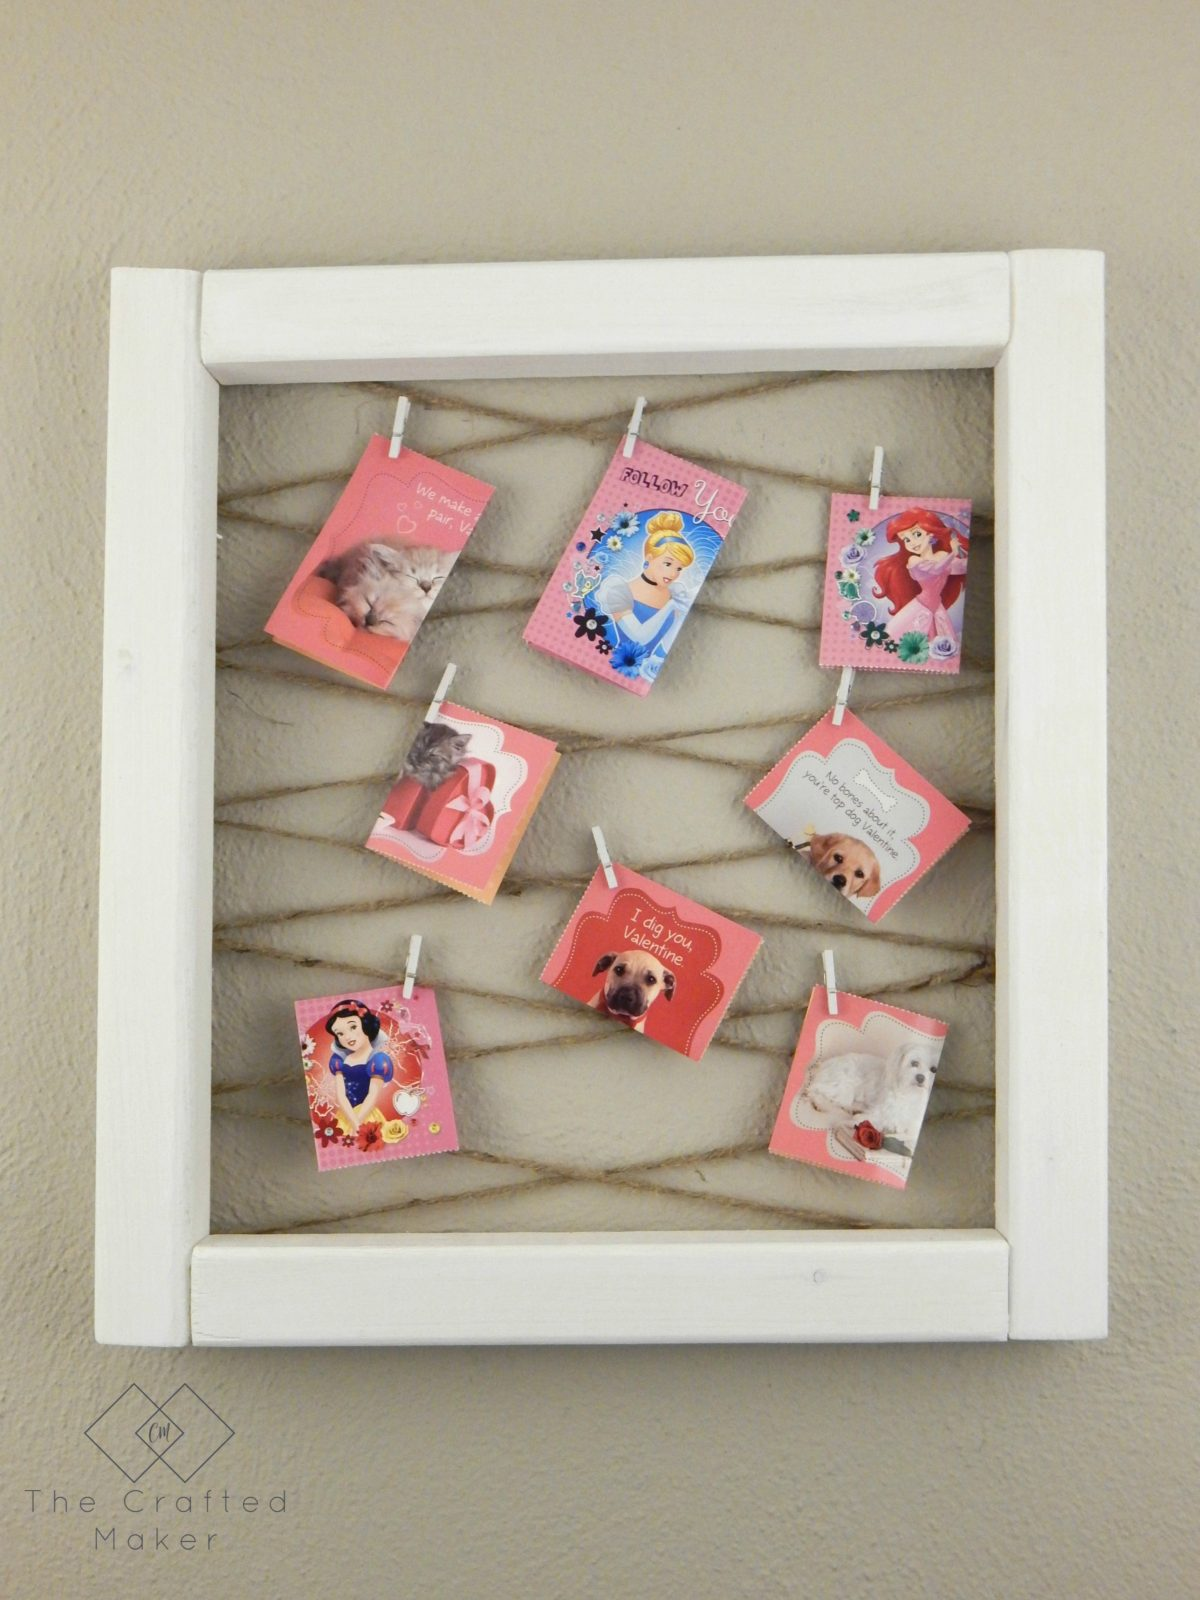 Quick and easy project to display all of those adorable Valentine cards children receive from friends and family. Super simple to make with just a few cuts.